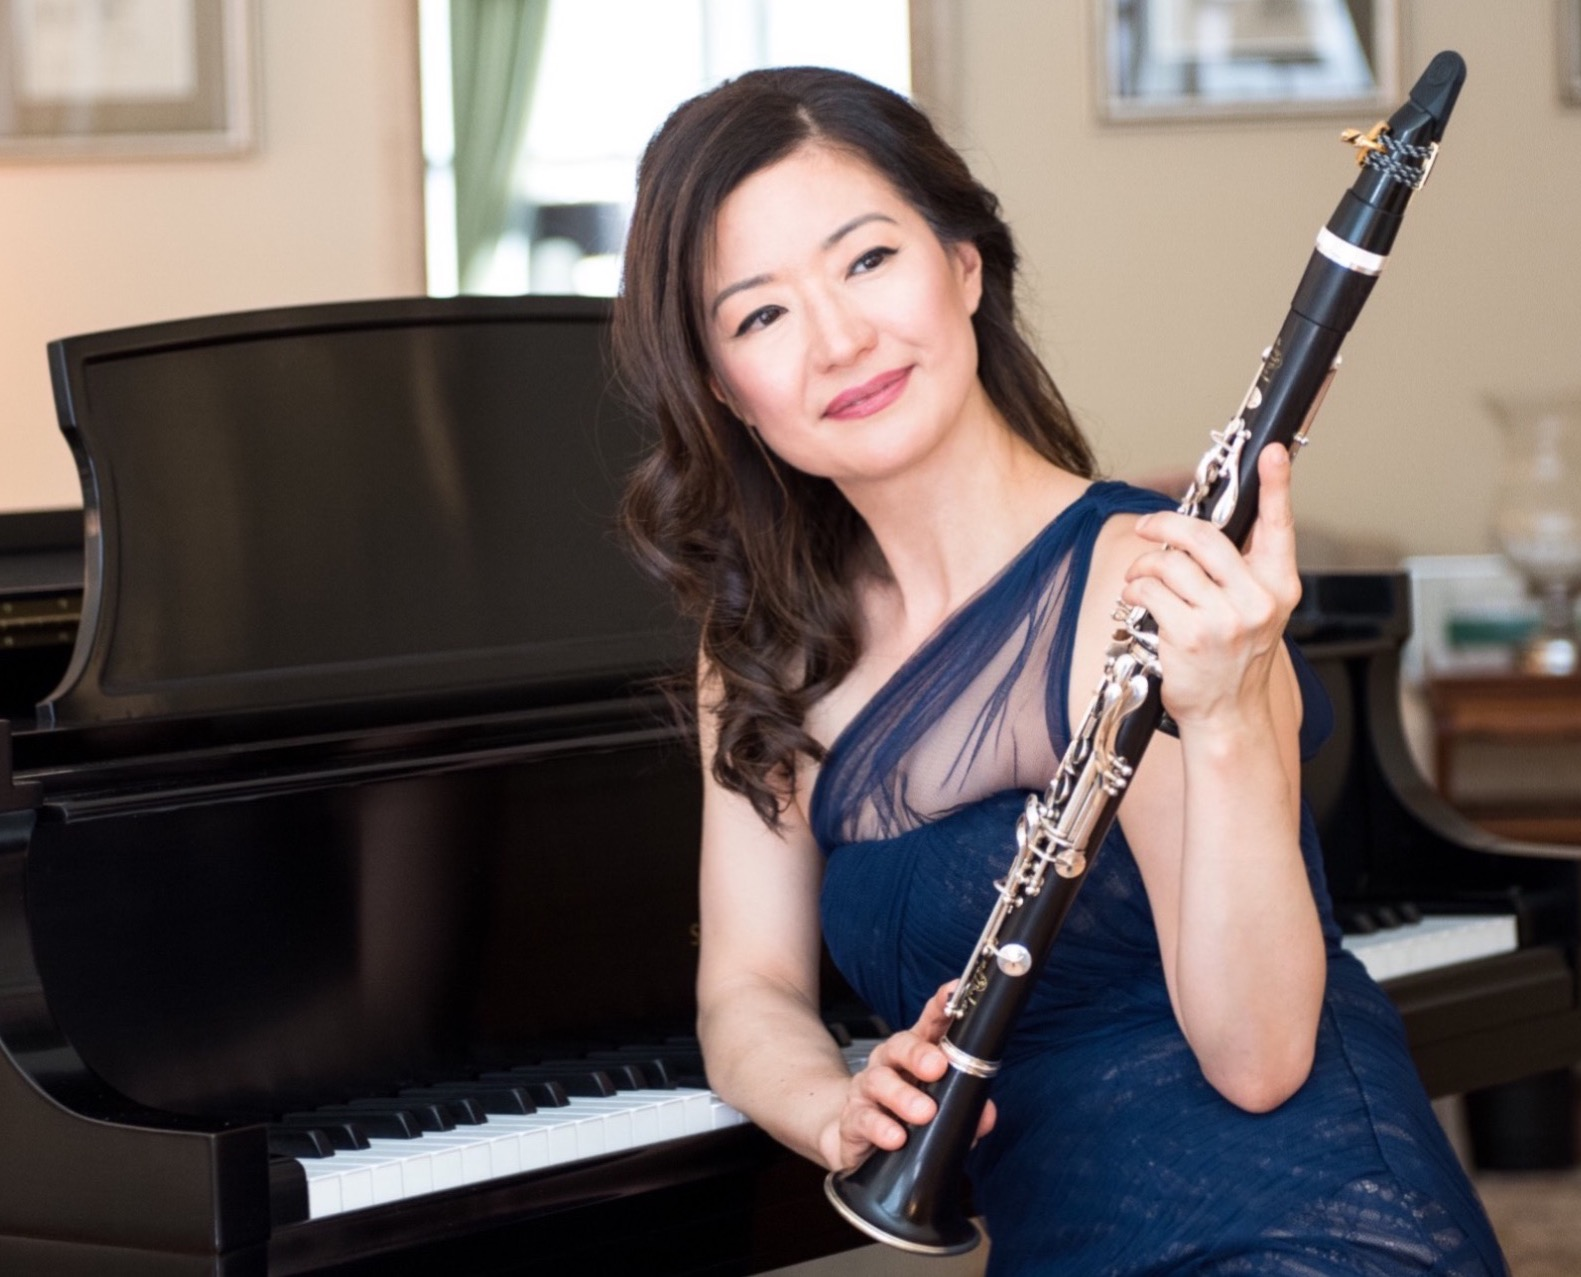 Clarinetist, Seunghee Lee